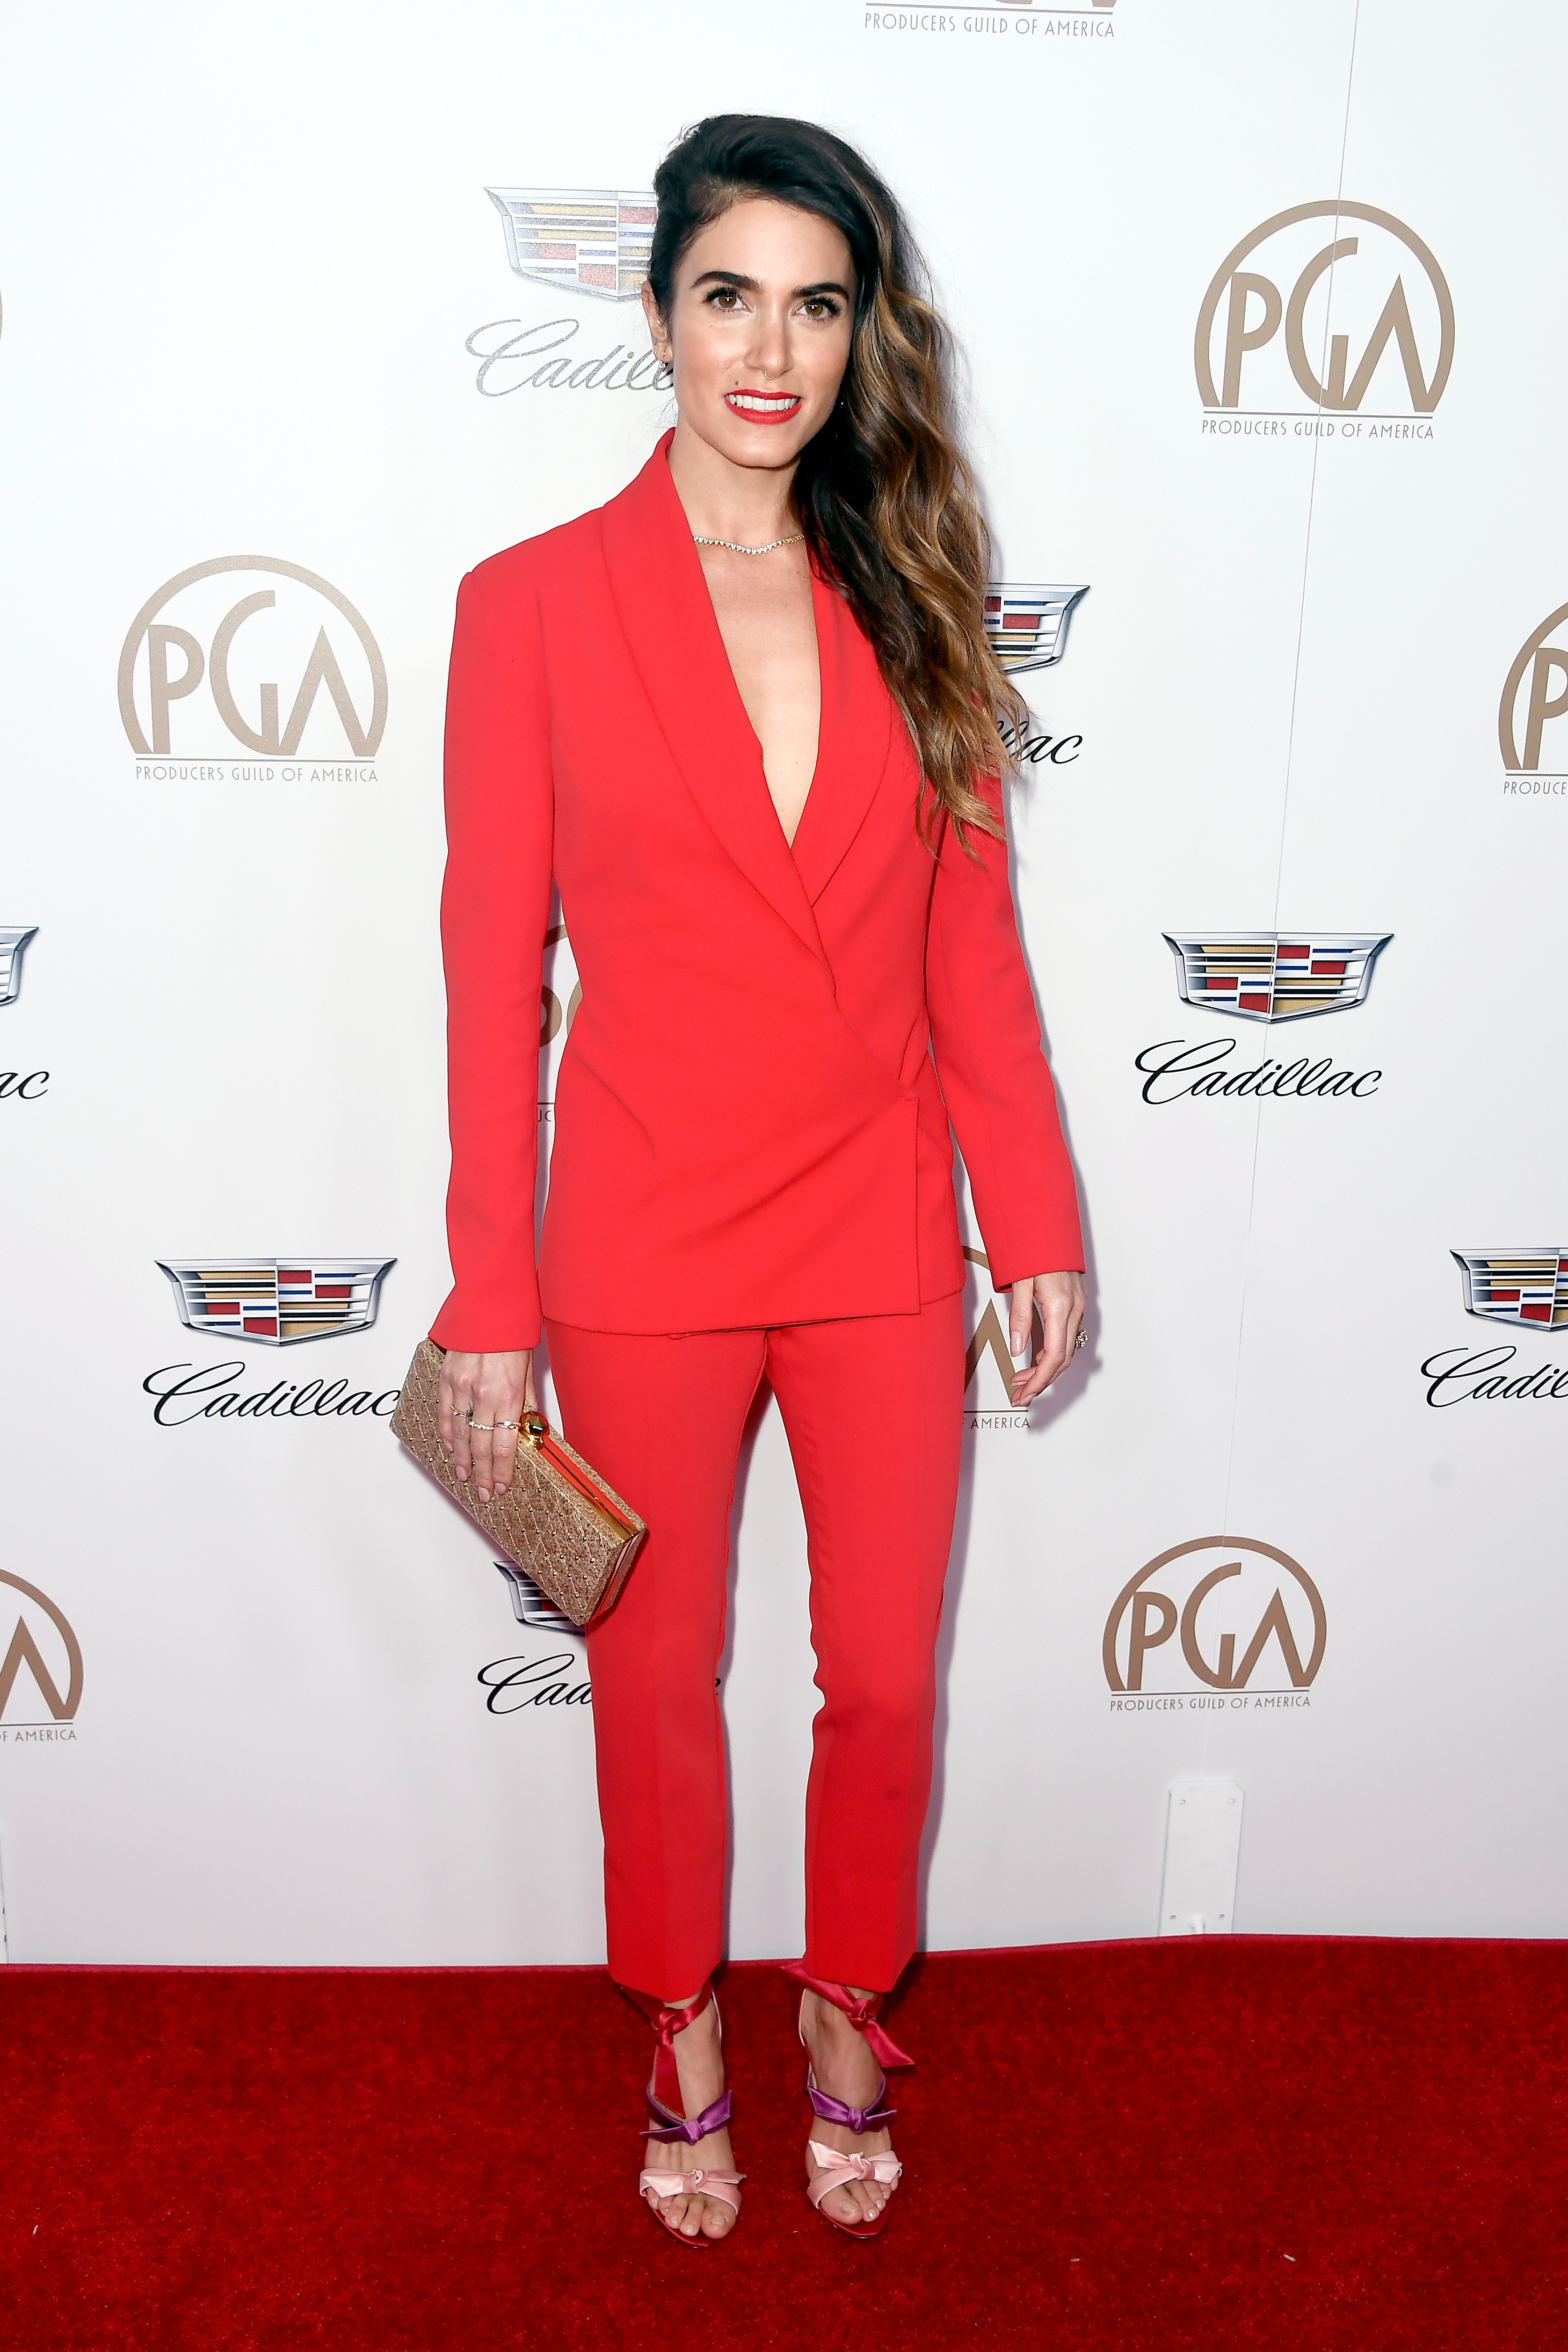 Nikki Reed attends the 29th Annual Producers Guild Awards at The Beverly Hilton Hotel in Beverly Hills, California, on Jan. 20, 2018.